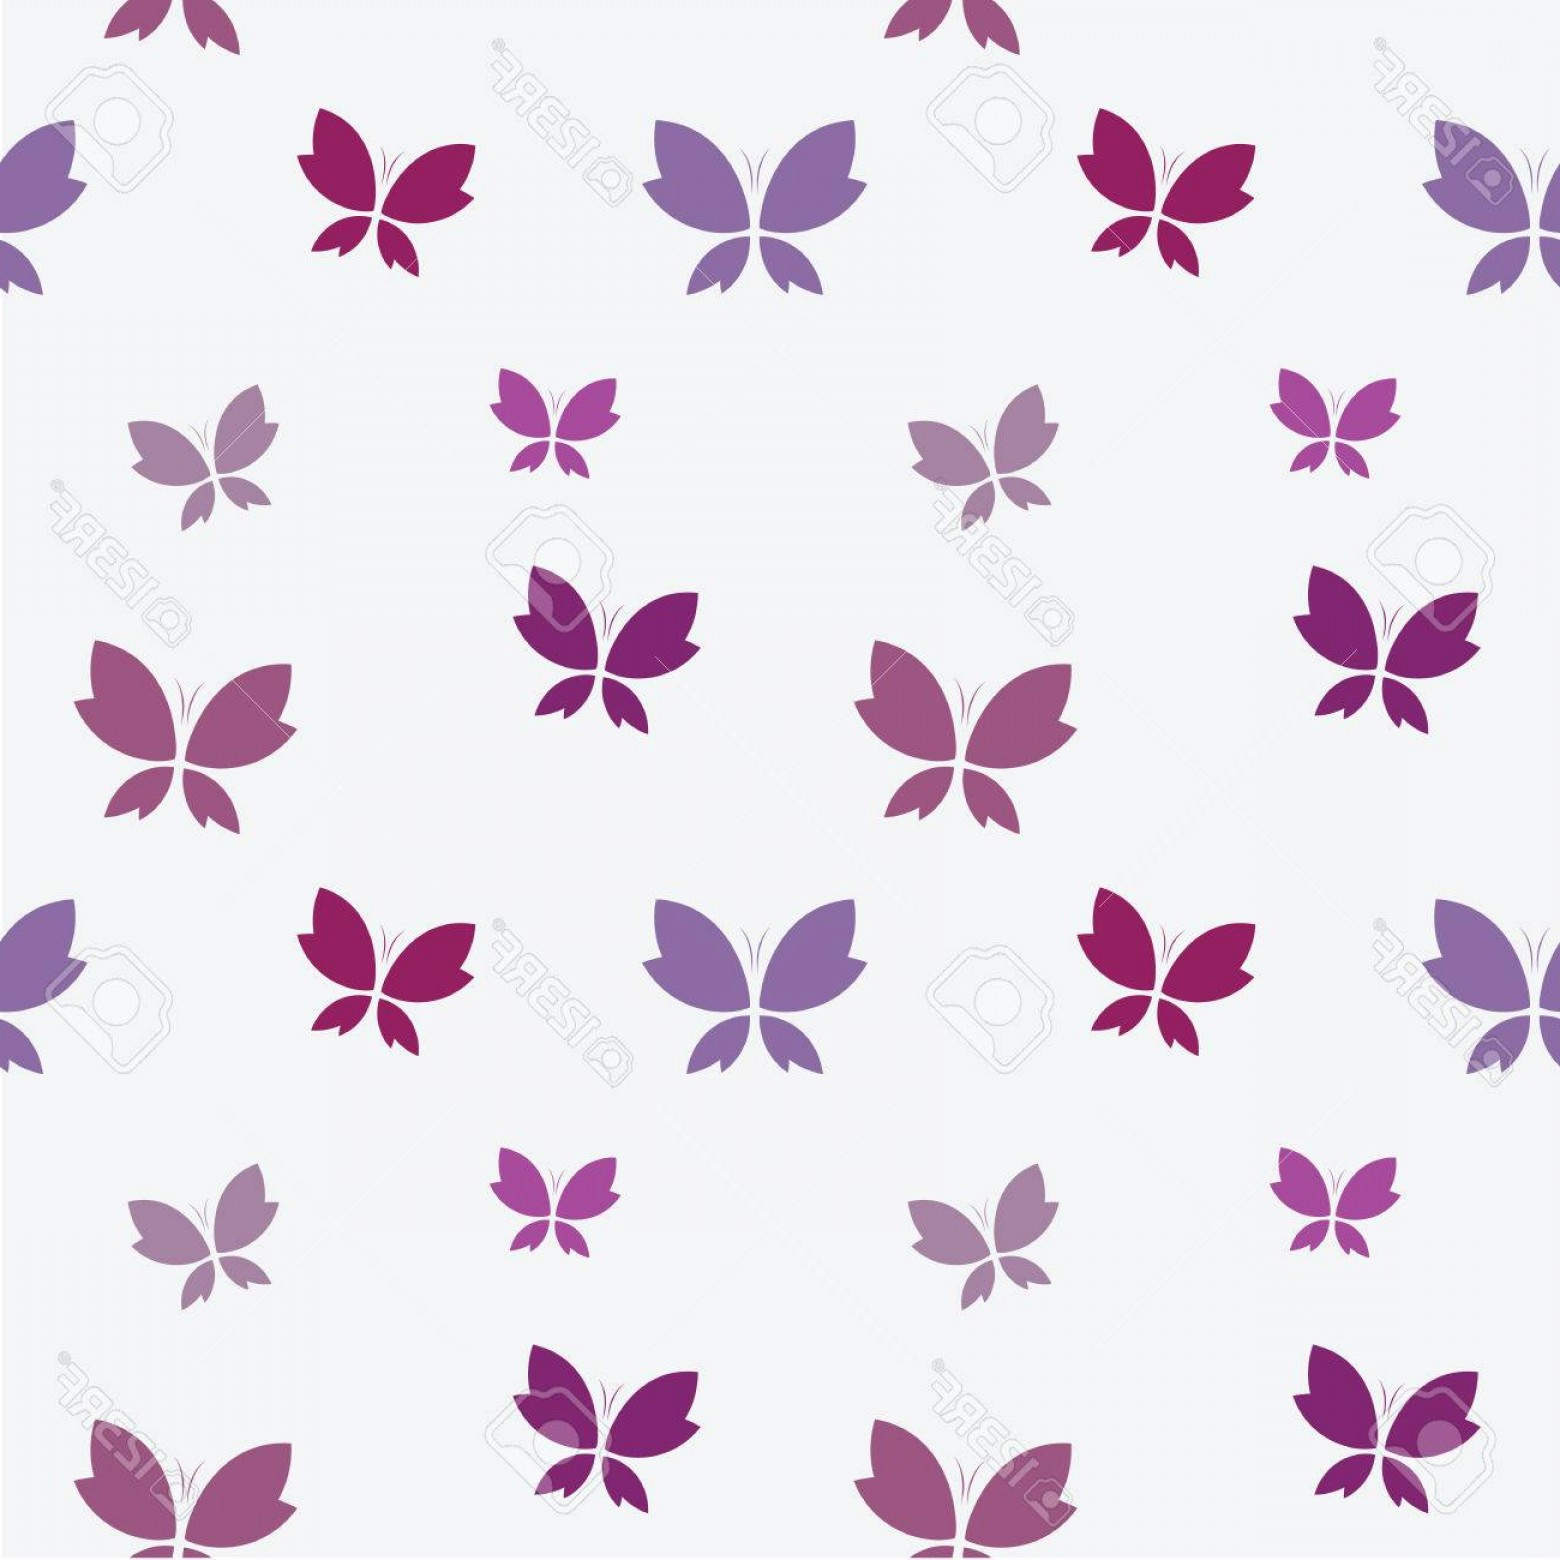 Purple Butterfly Wallpaper Vector: Photostock Vector Vector Seamless Pattern With Purple Butterfly On White Background Wallpaper